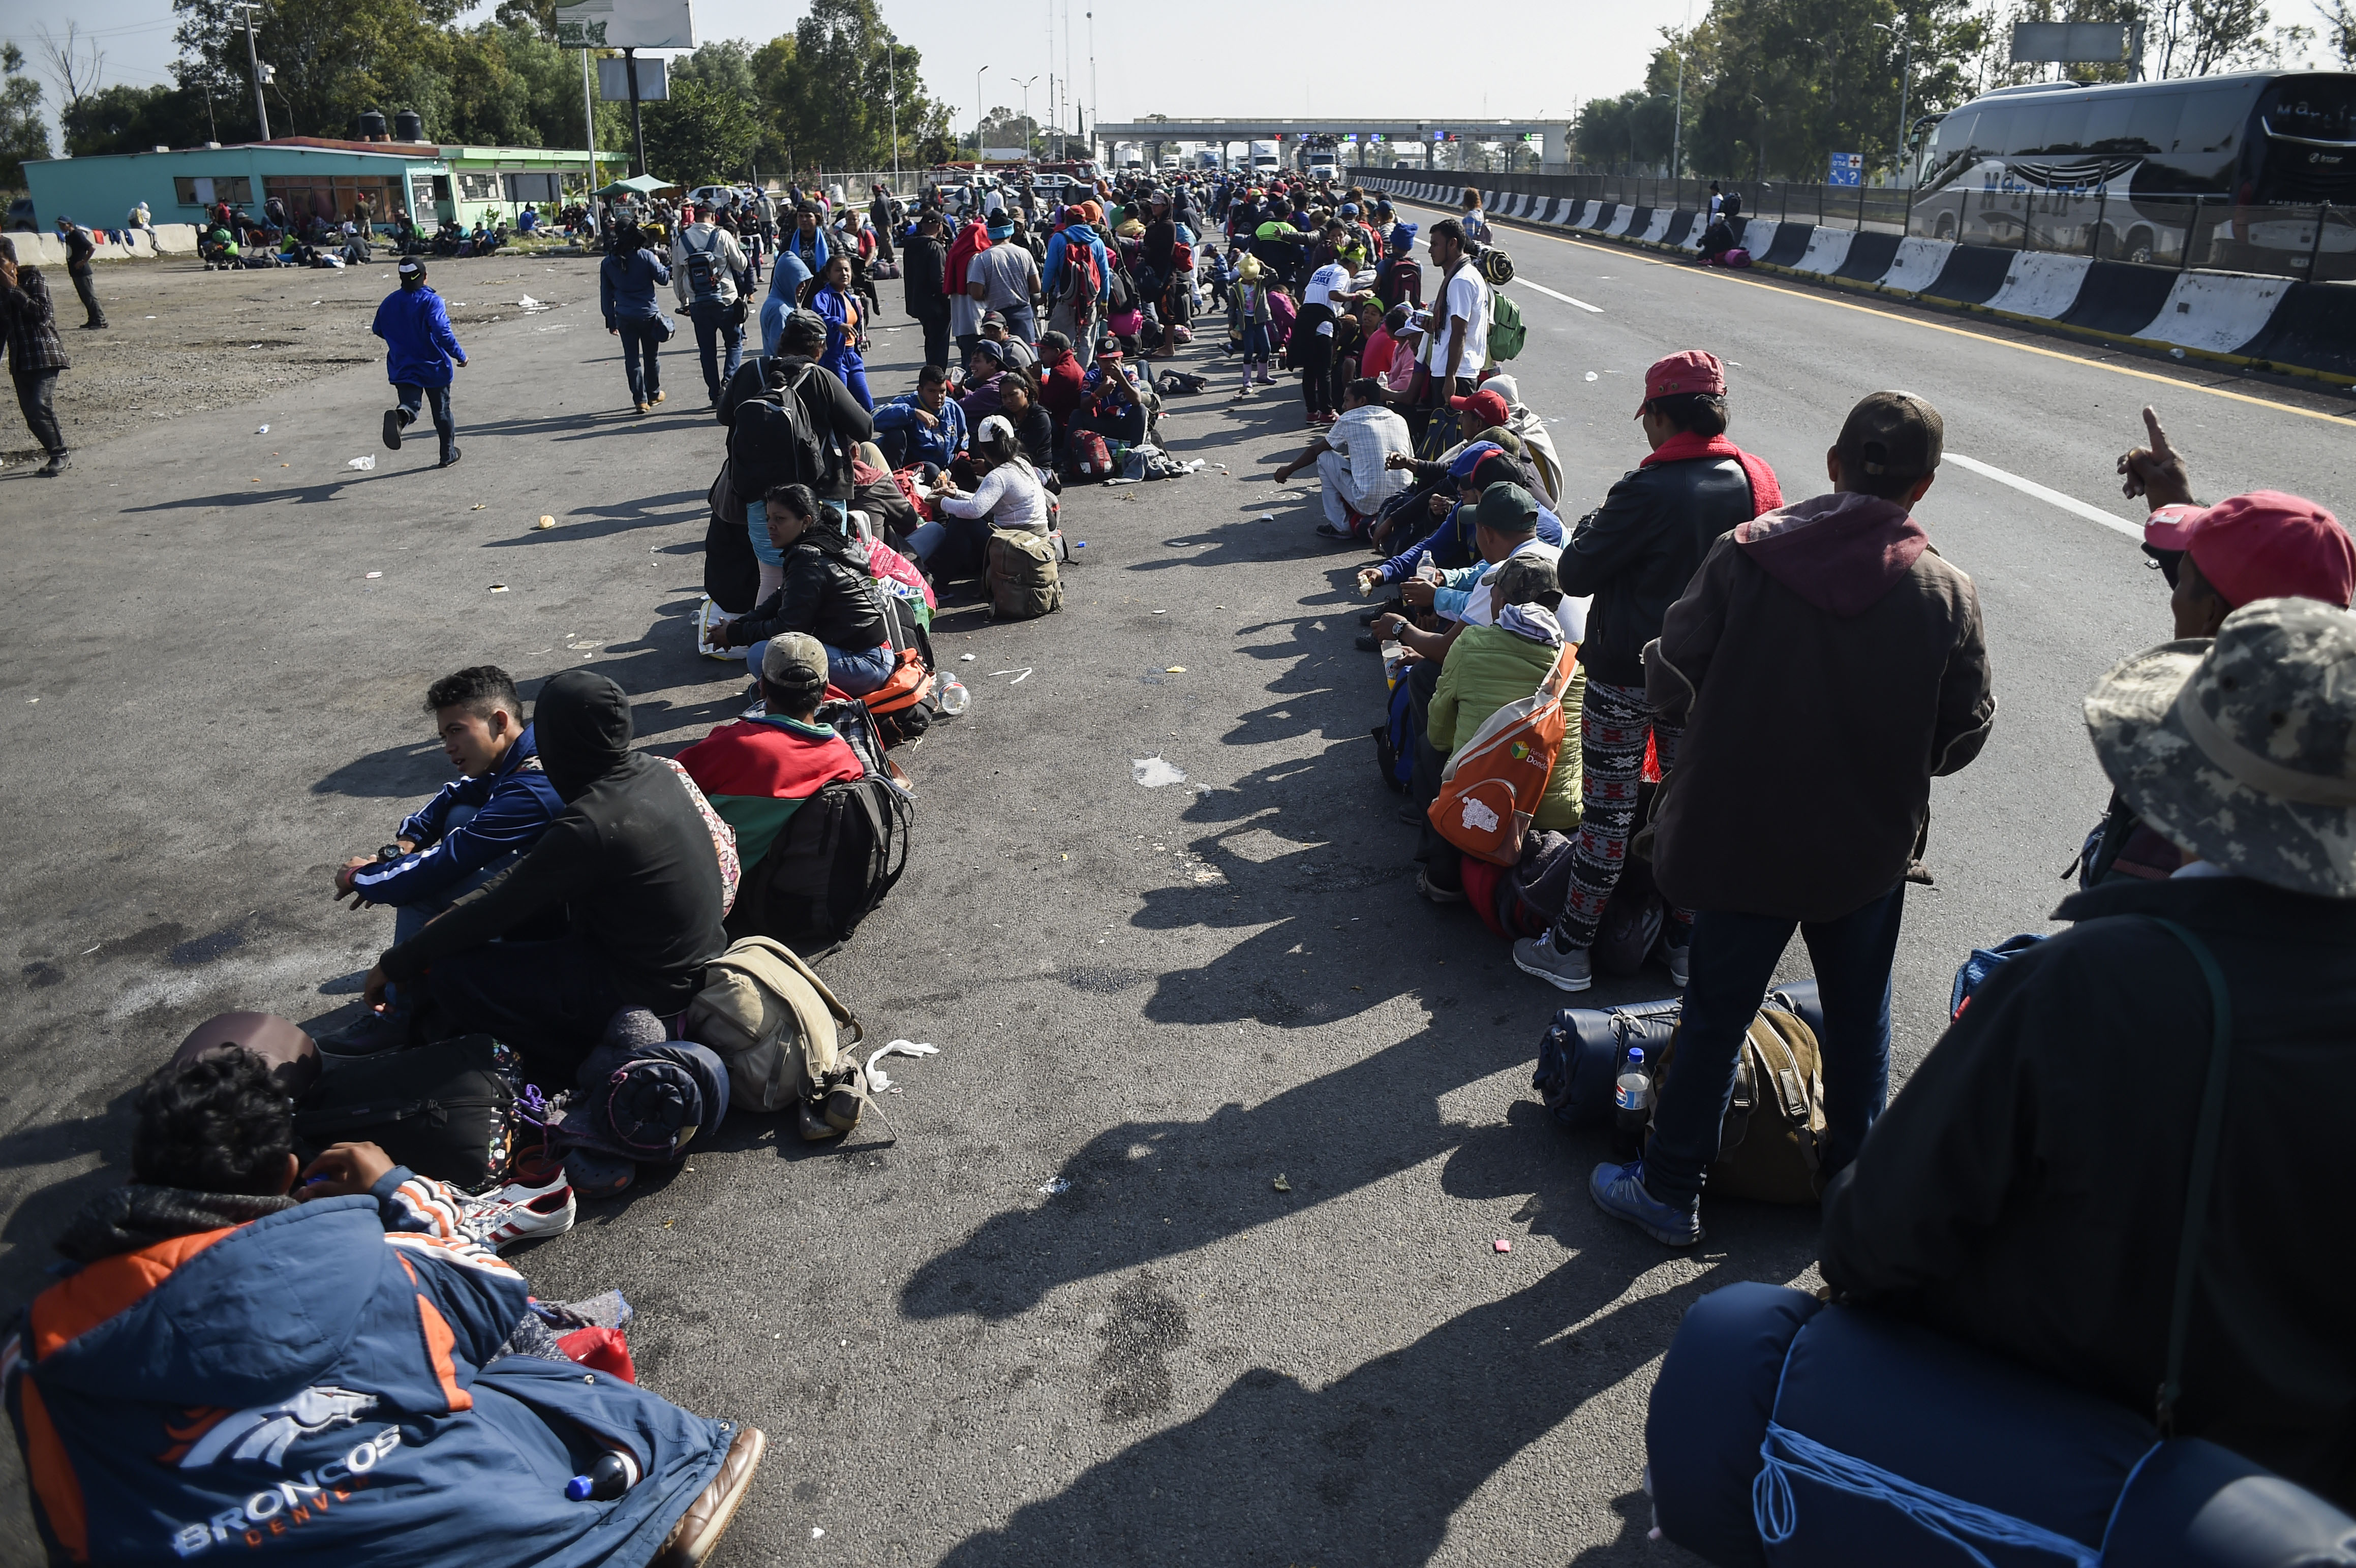 Central American migrants taking part in a caravan to the US, queue along the highway to get a ride to Irapuato in the state of Guanajuato on November 11, 2018 after spending the night in Queretaro in central Mexico. (ALFREDO ESTRELLA/AFP/Getty Images)